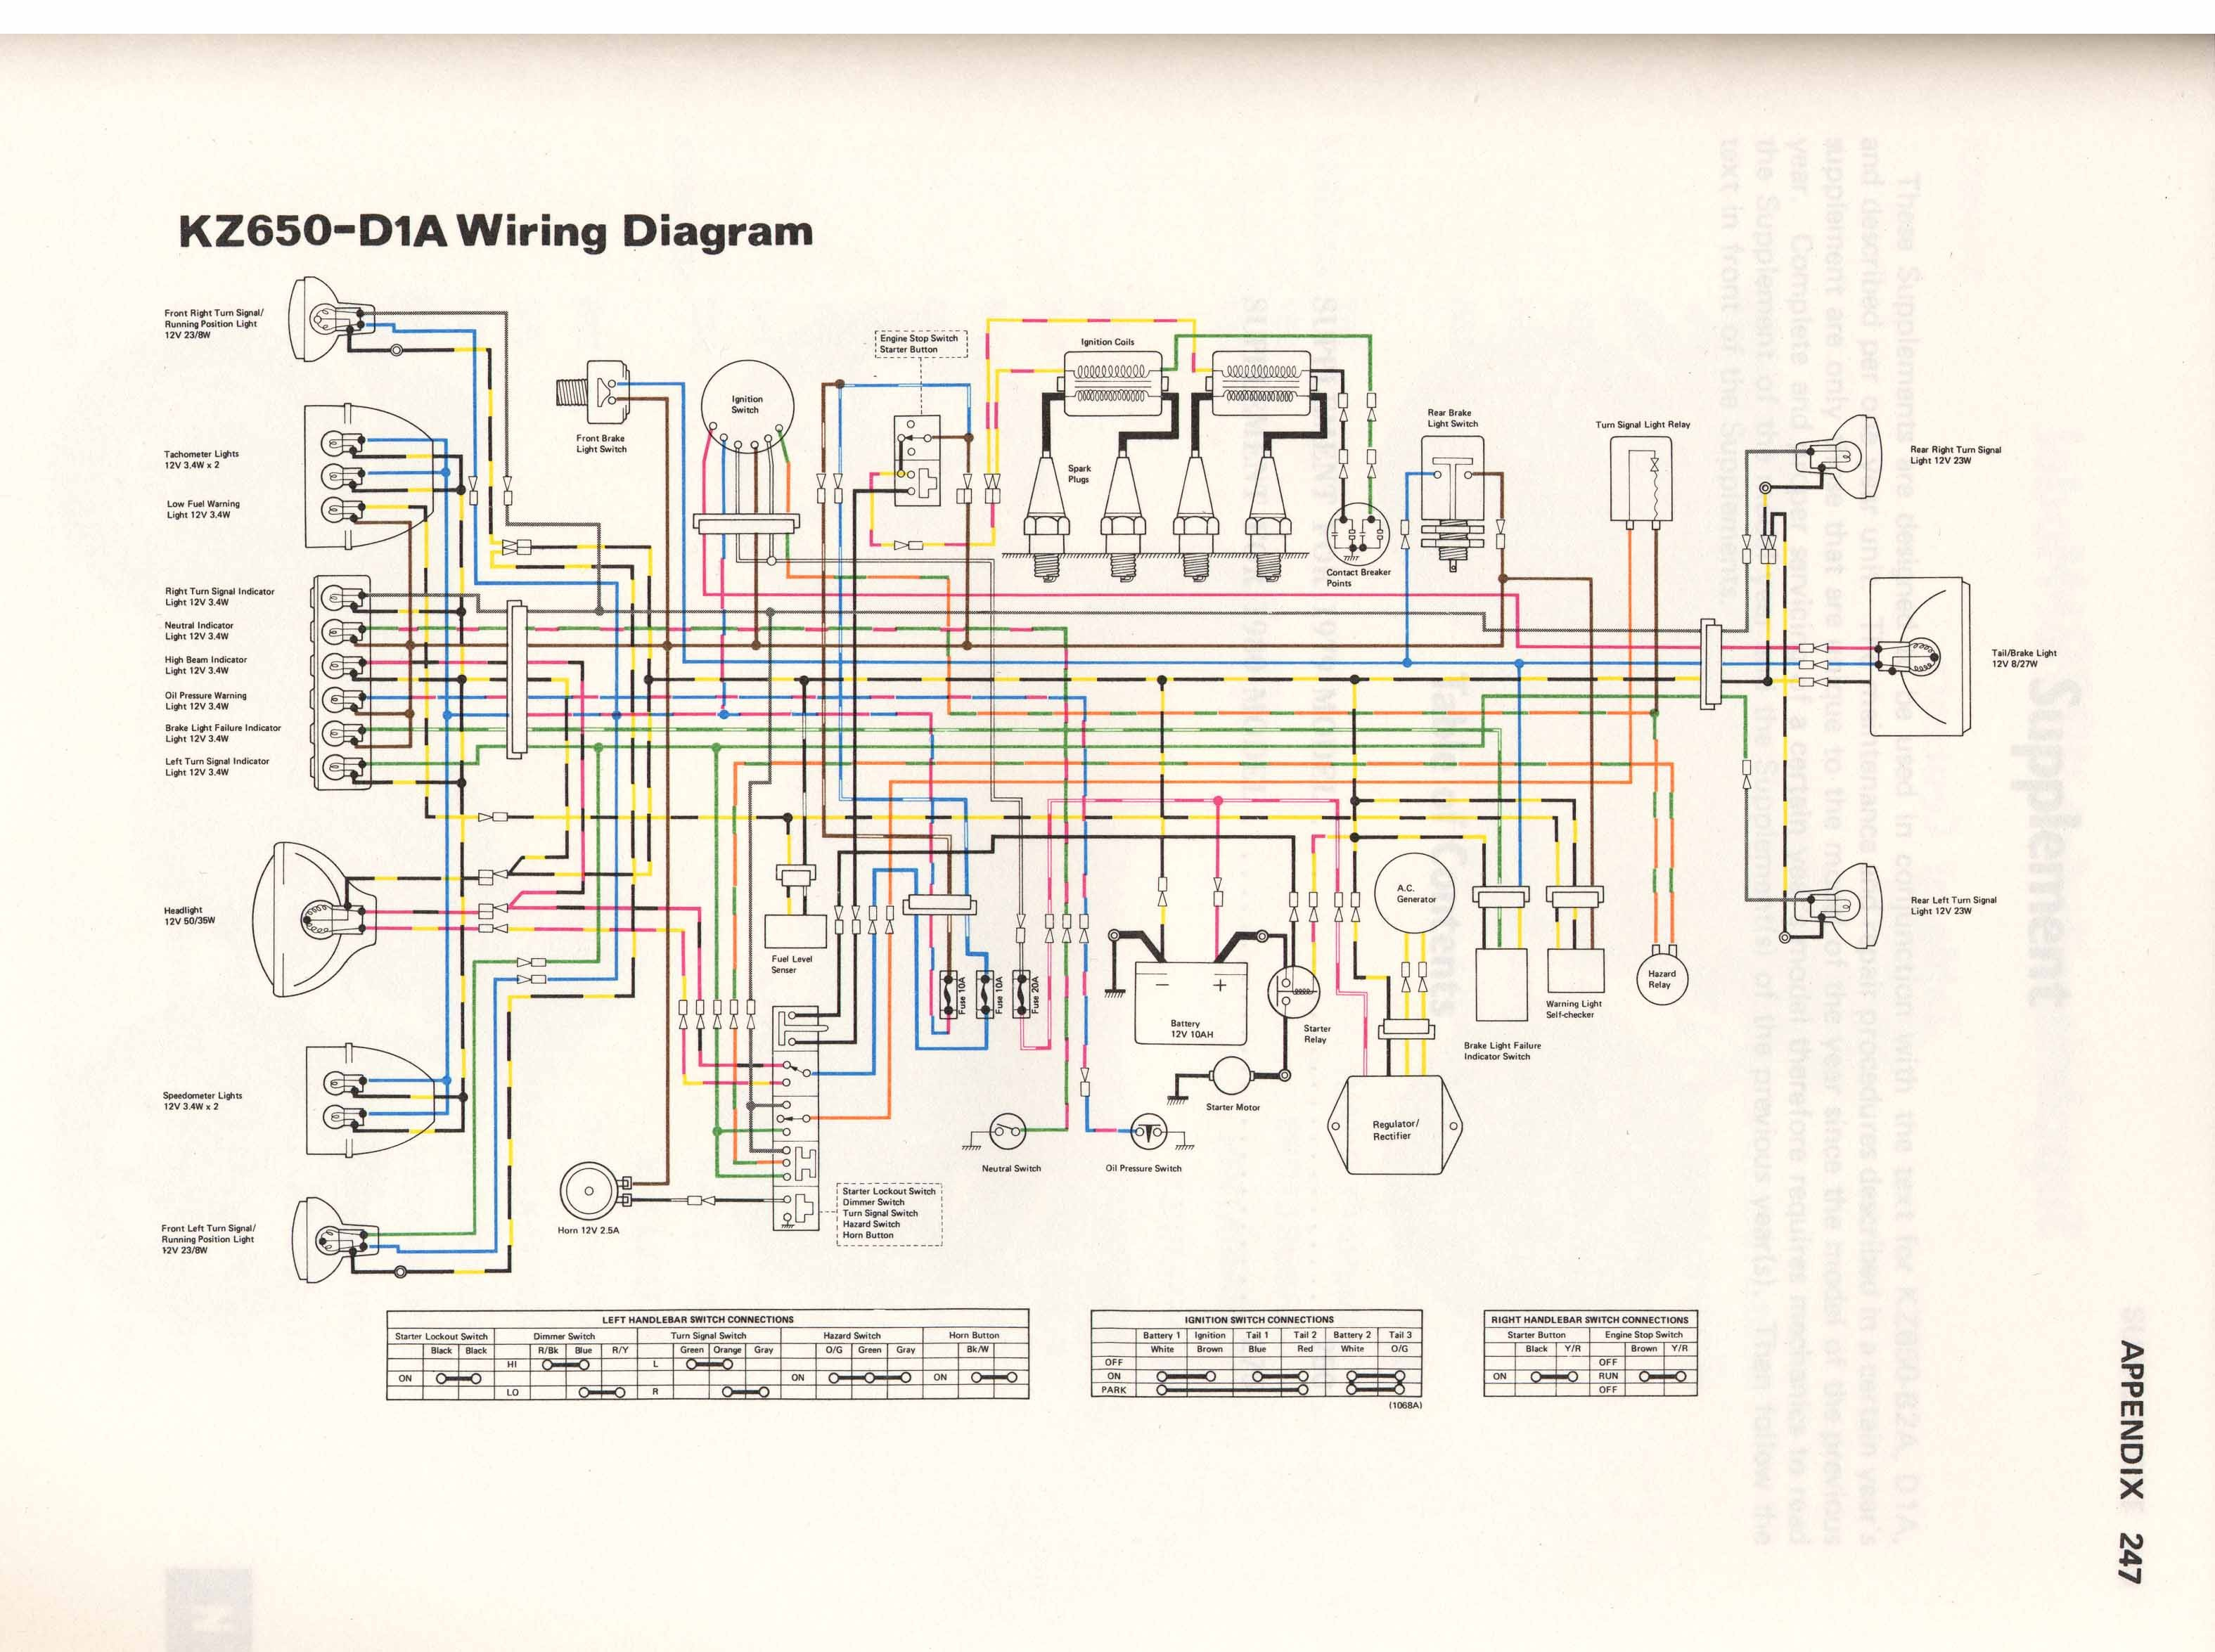 kawasaki kz650 wiring diagram my wiring diagram 92 honda accord wiring diagram #15